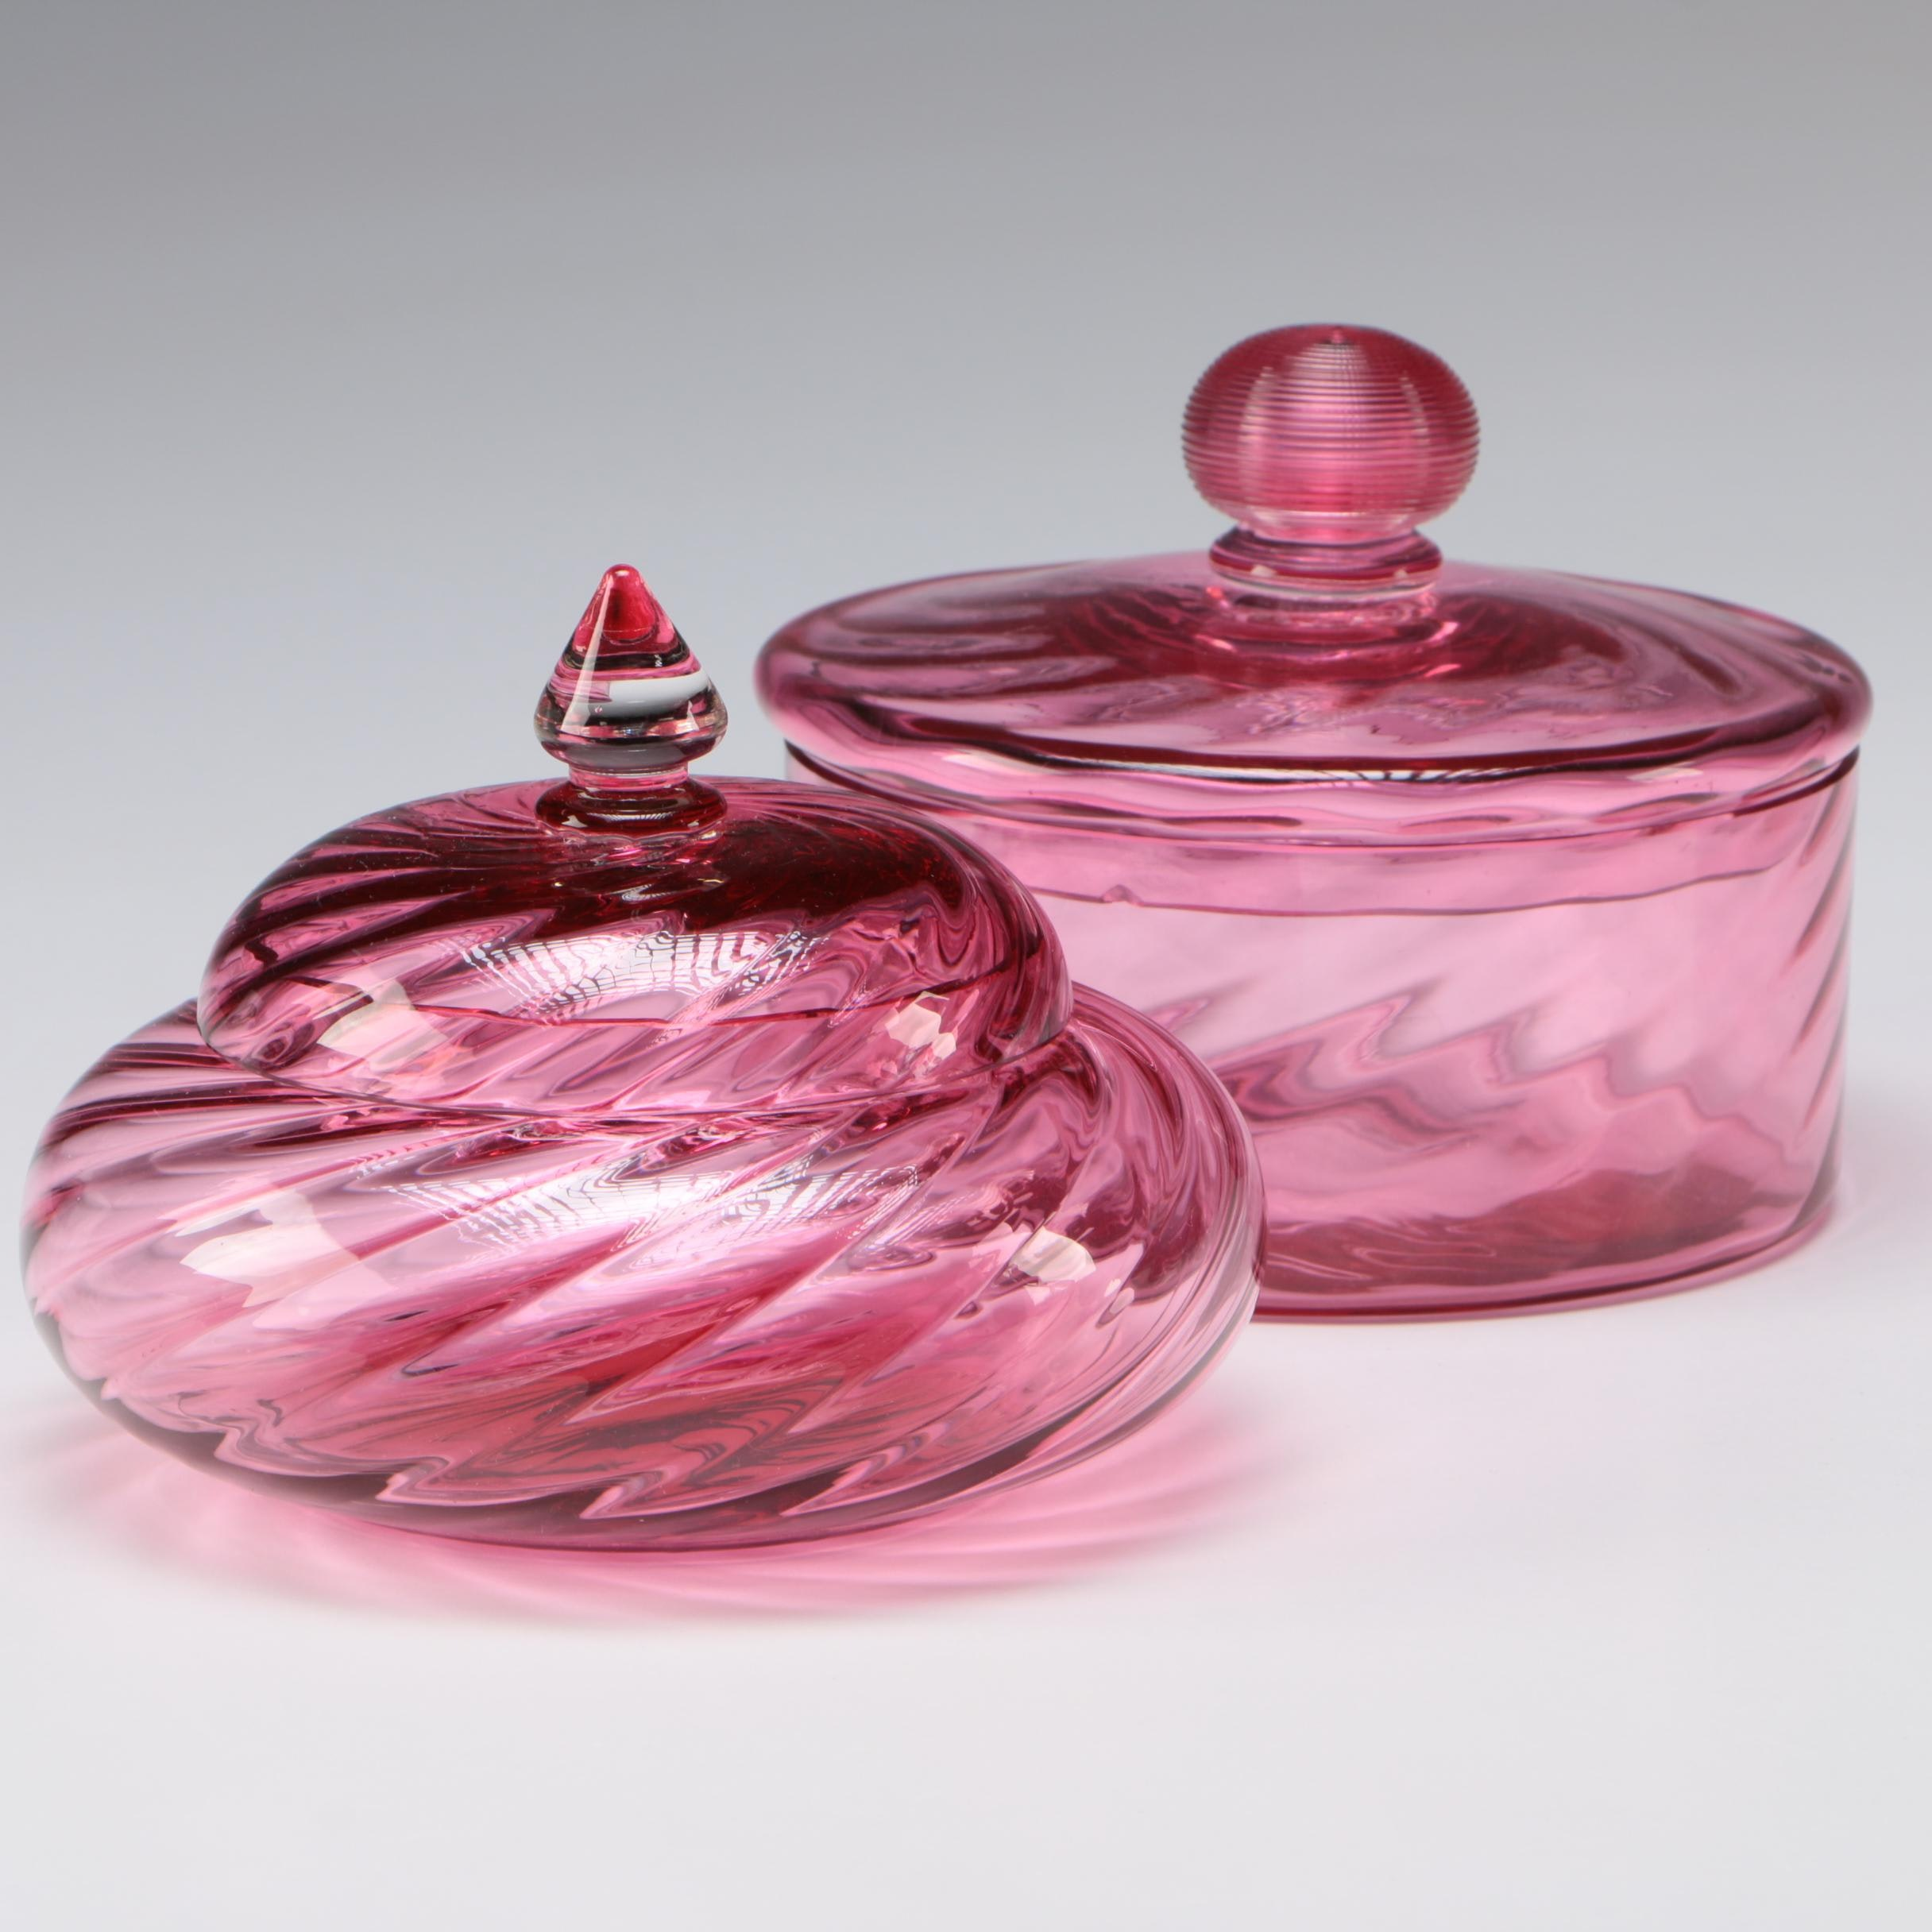 Steuben Gold Ruby Art Glass Puff Boxes, Early 20th Century